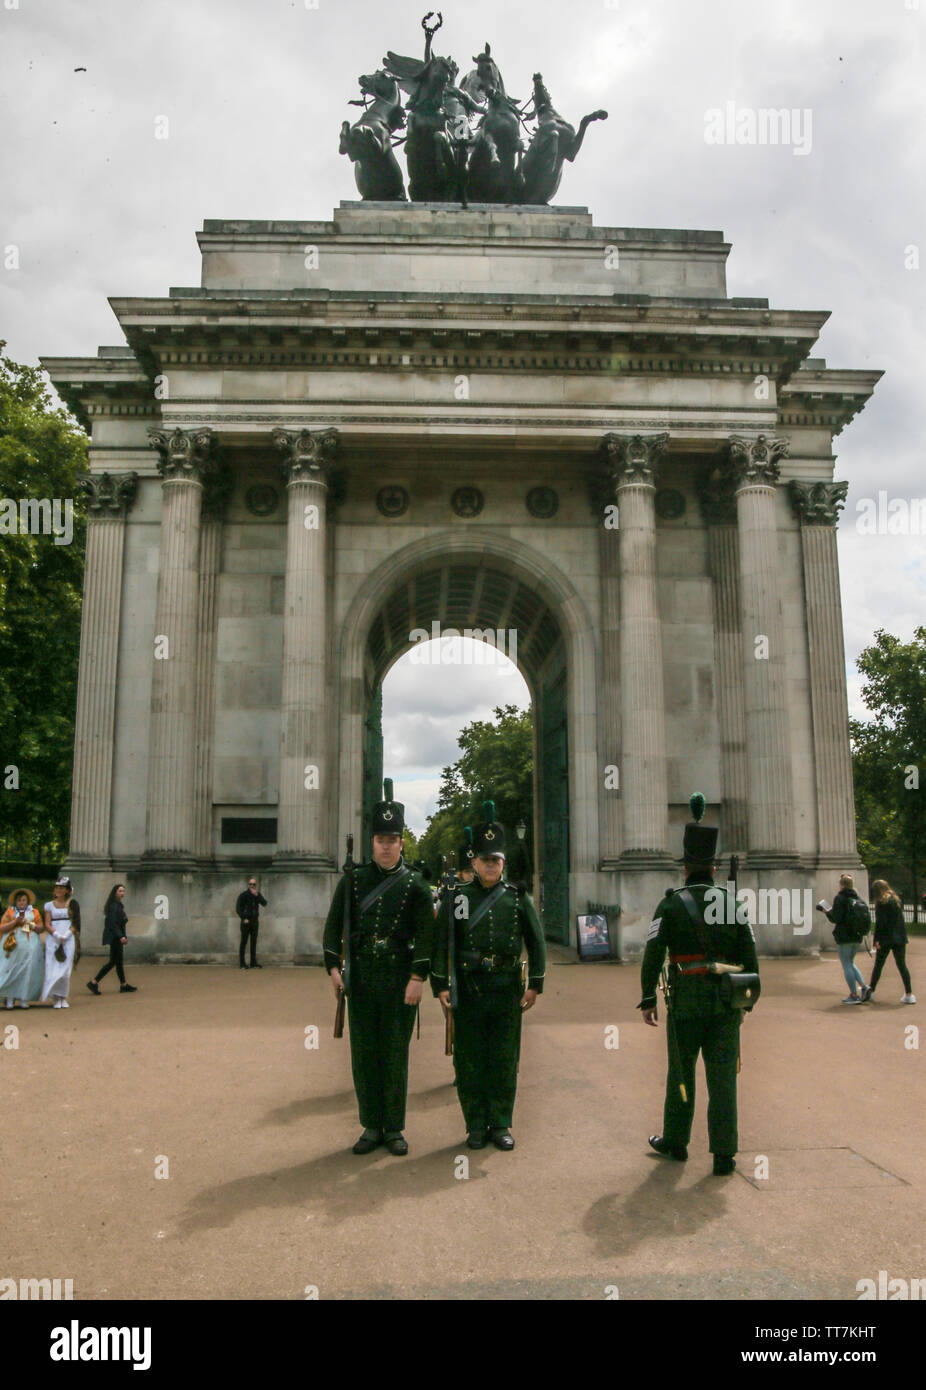 London, UK. 15th June, 2019. The Battle of Waterloo was fought on Sunday 18th June 1815 near Waterloo in Belgium, part of the United Kingdom of the Netherlands and at the time Apsley House was the Duke of Wellington's London home. 95th Rifles who presented life in one of Wellington's regiments, commemorated the battle of Waterloo anniversary weekend where they were able to re-live the drama and grandeur of the Napoleonic war with live re-enactments both inside and outside Apsley house.Paul Quezada-Neiman/Alamy Live News Credit: Paul Quezada-Neiman/Alamy Live News - Stock Image